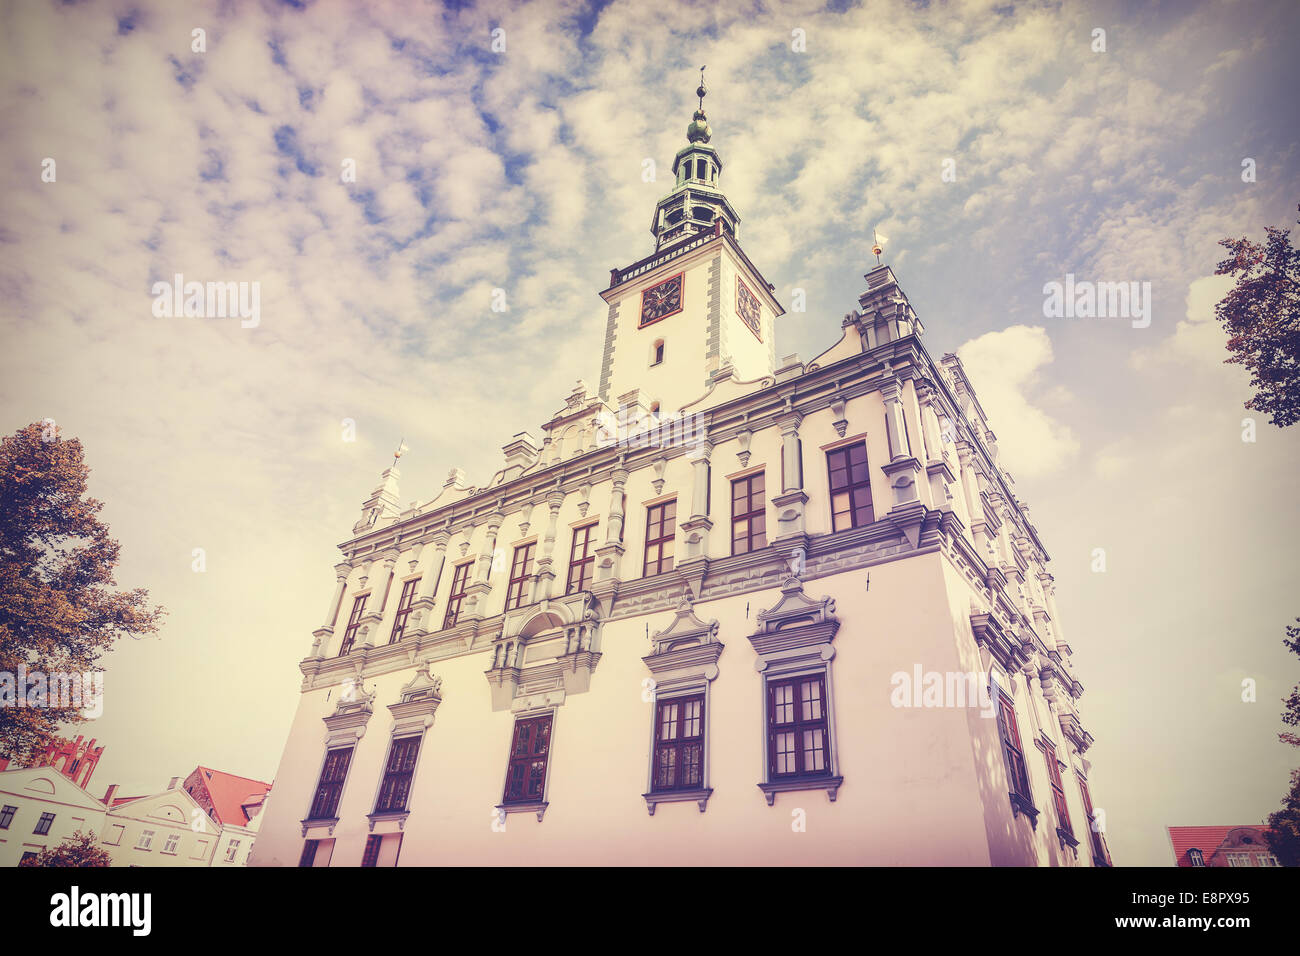 Vintage retro filtered photo of town hall in Chelmno, Poland. - Stock Image